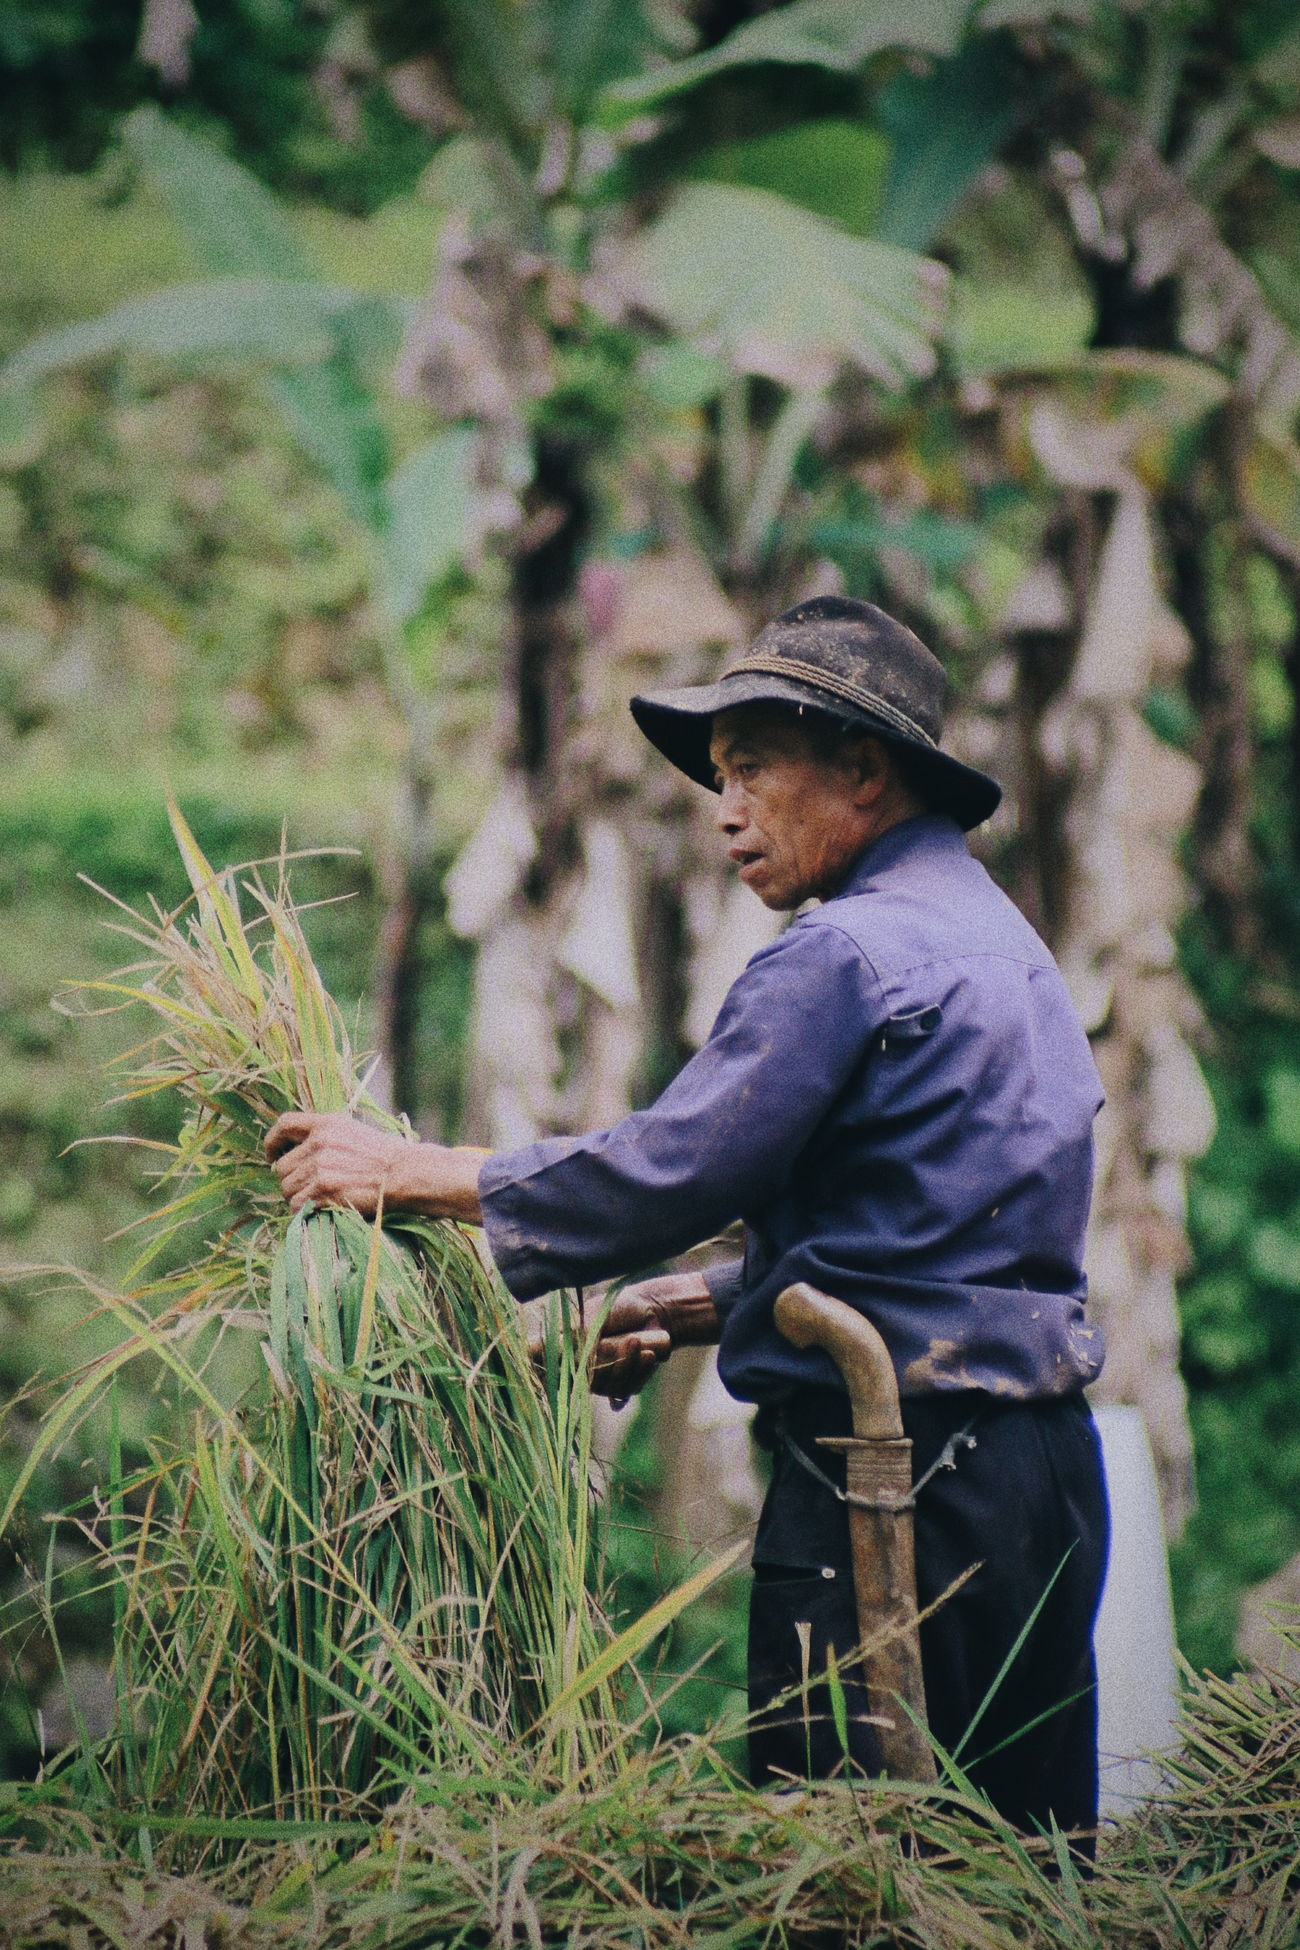 Farmer... Real People One Person Working Field Occupation Outdoors Lifestyles Day Men Nature Growth Full Length Farmer One Man Only Adult Only Men Adults Only People Humaninterestphotography Humaninterest Humaninterestindonesia Activity Traditional Farmer Nature